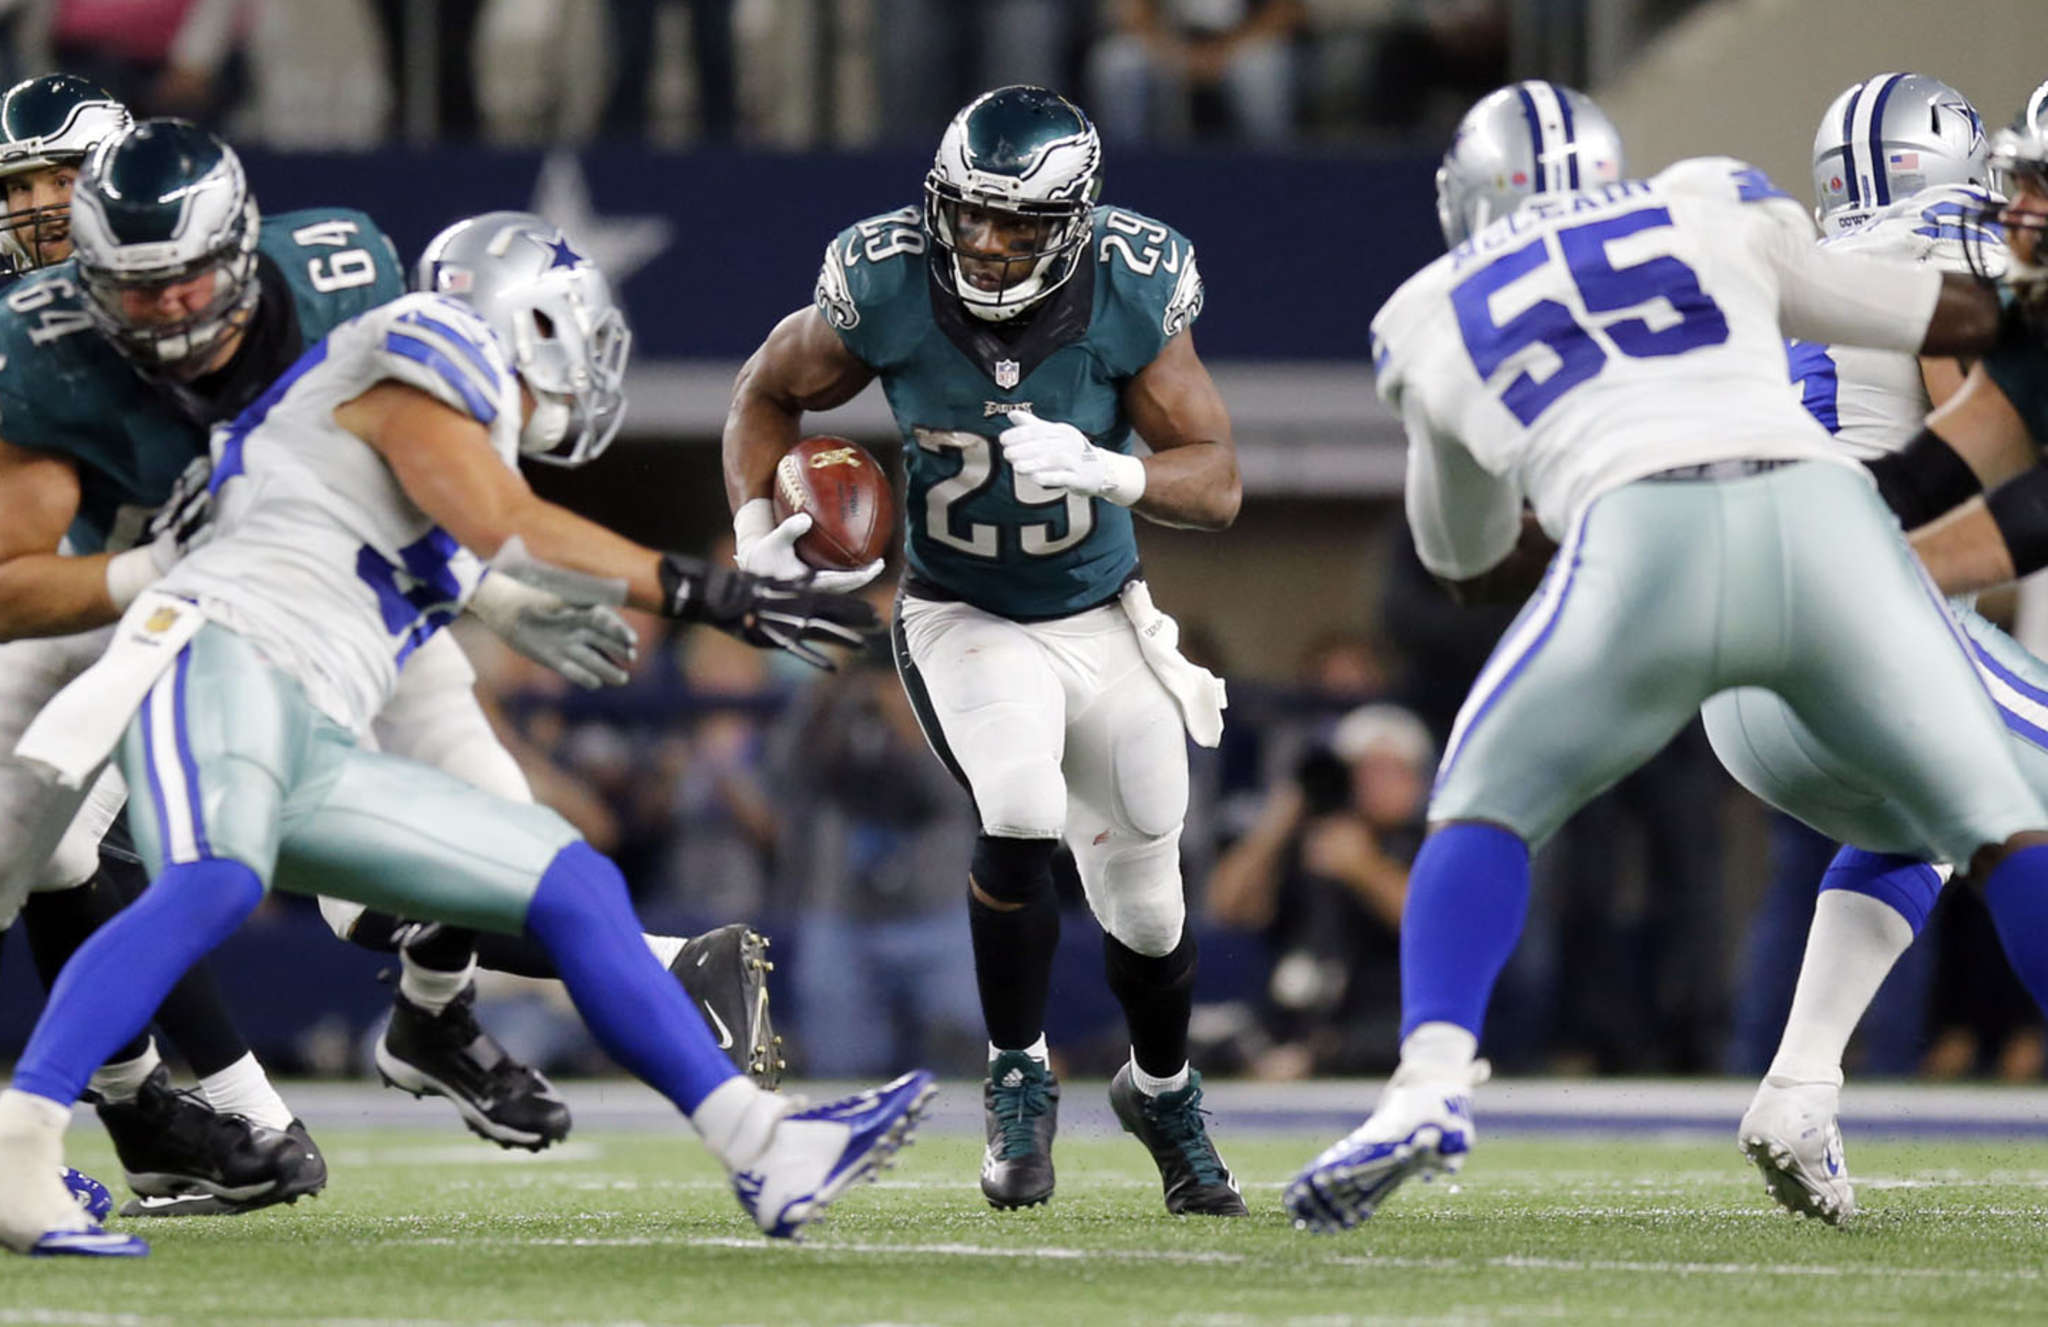 DeMarco Murray bursts through a hole in the win against Dallas. He gained 83 yards on 18 carries.